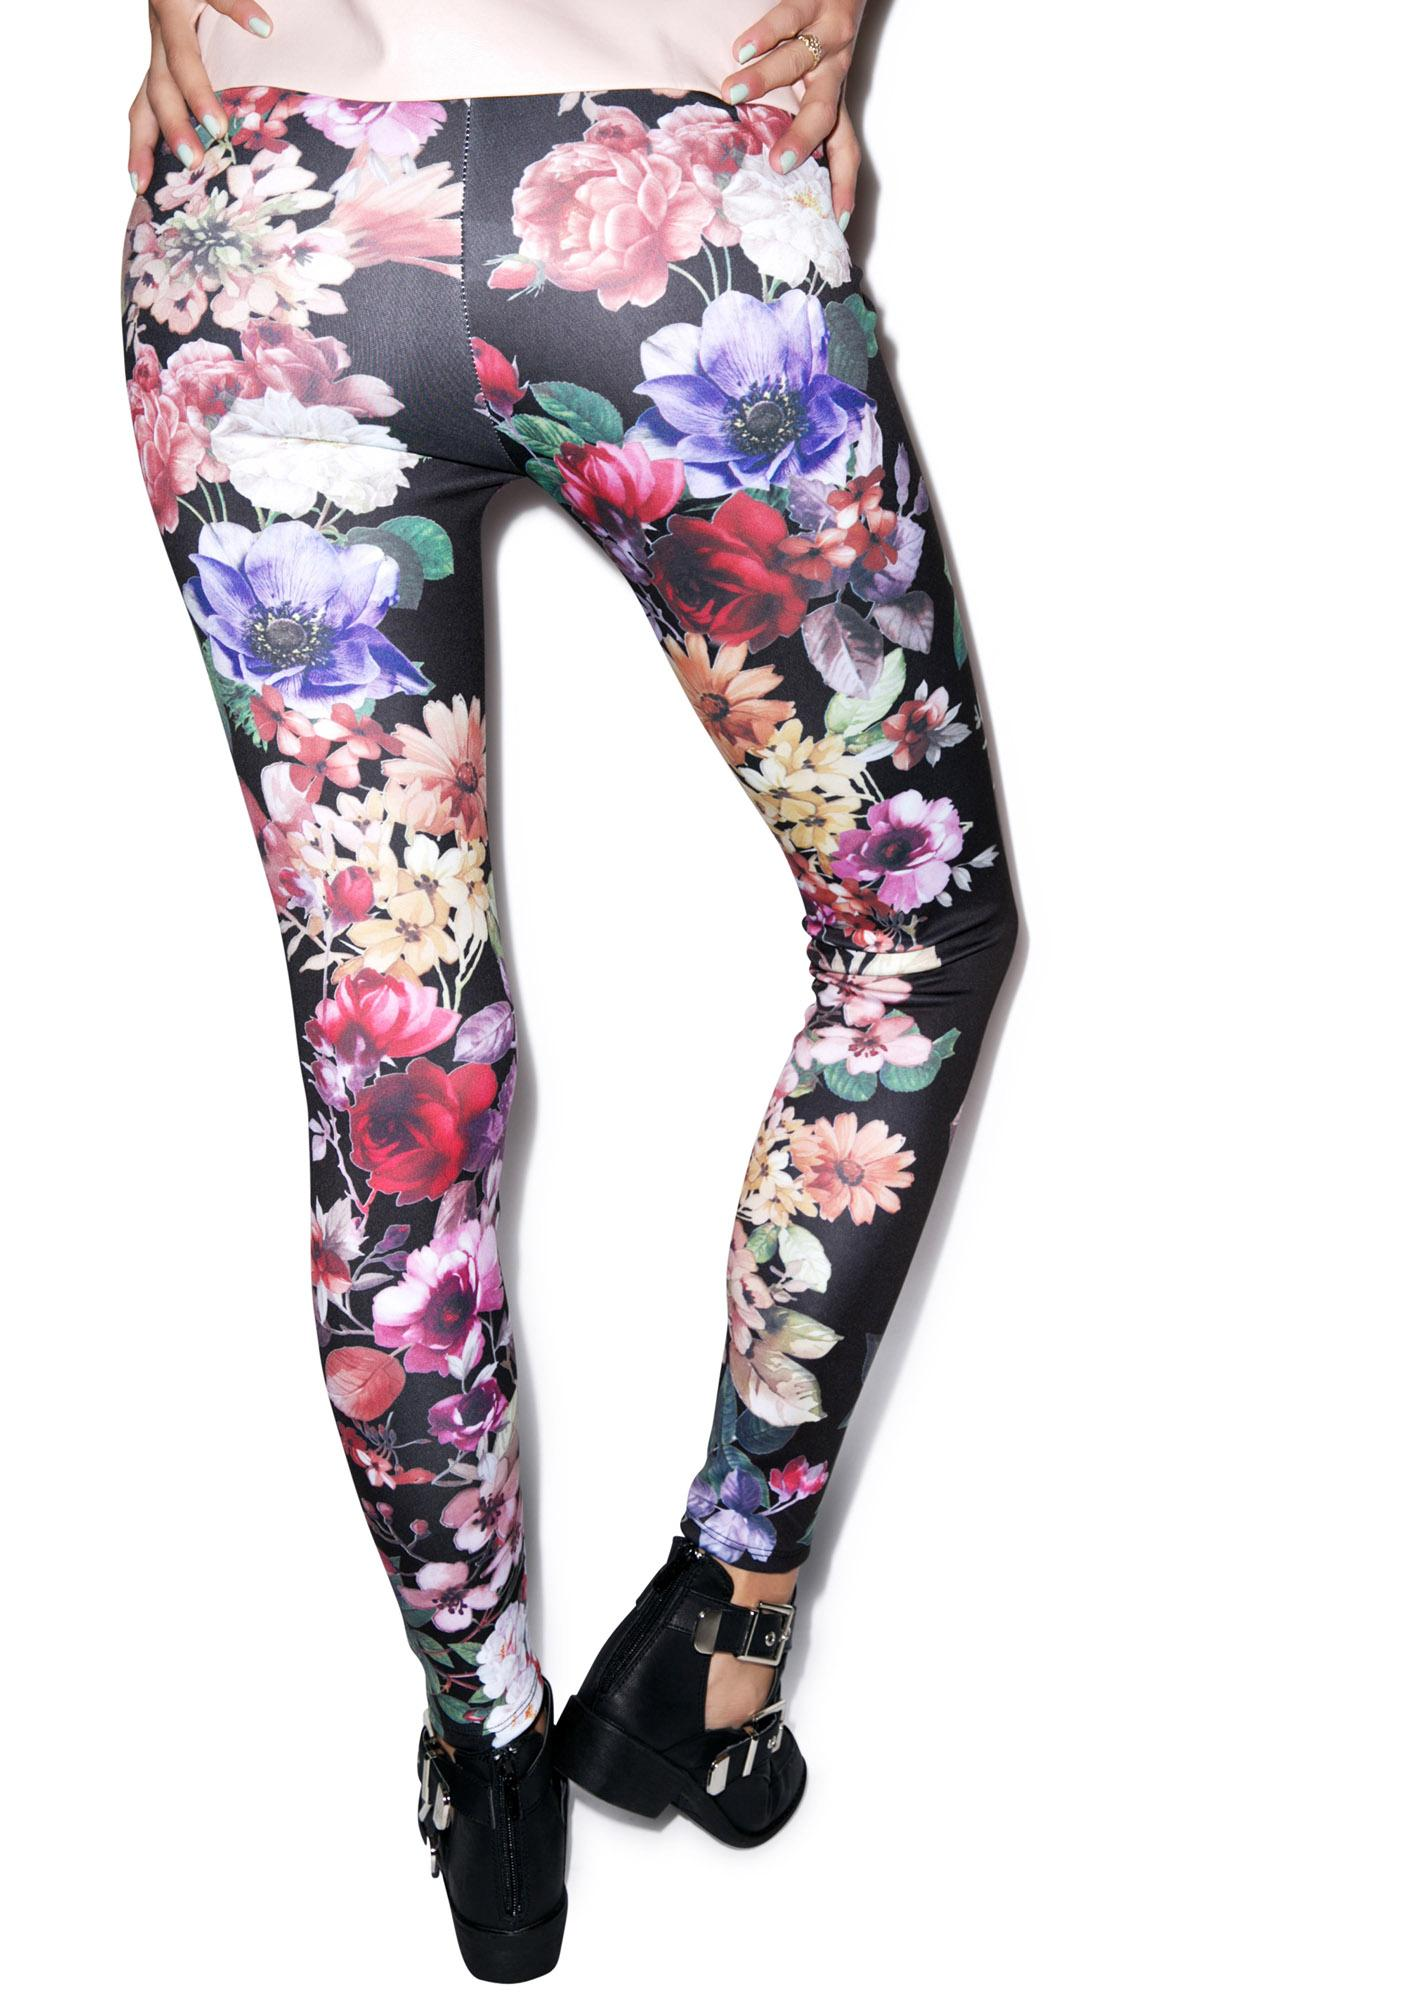 Take My Flower Leggings